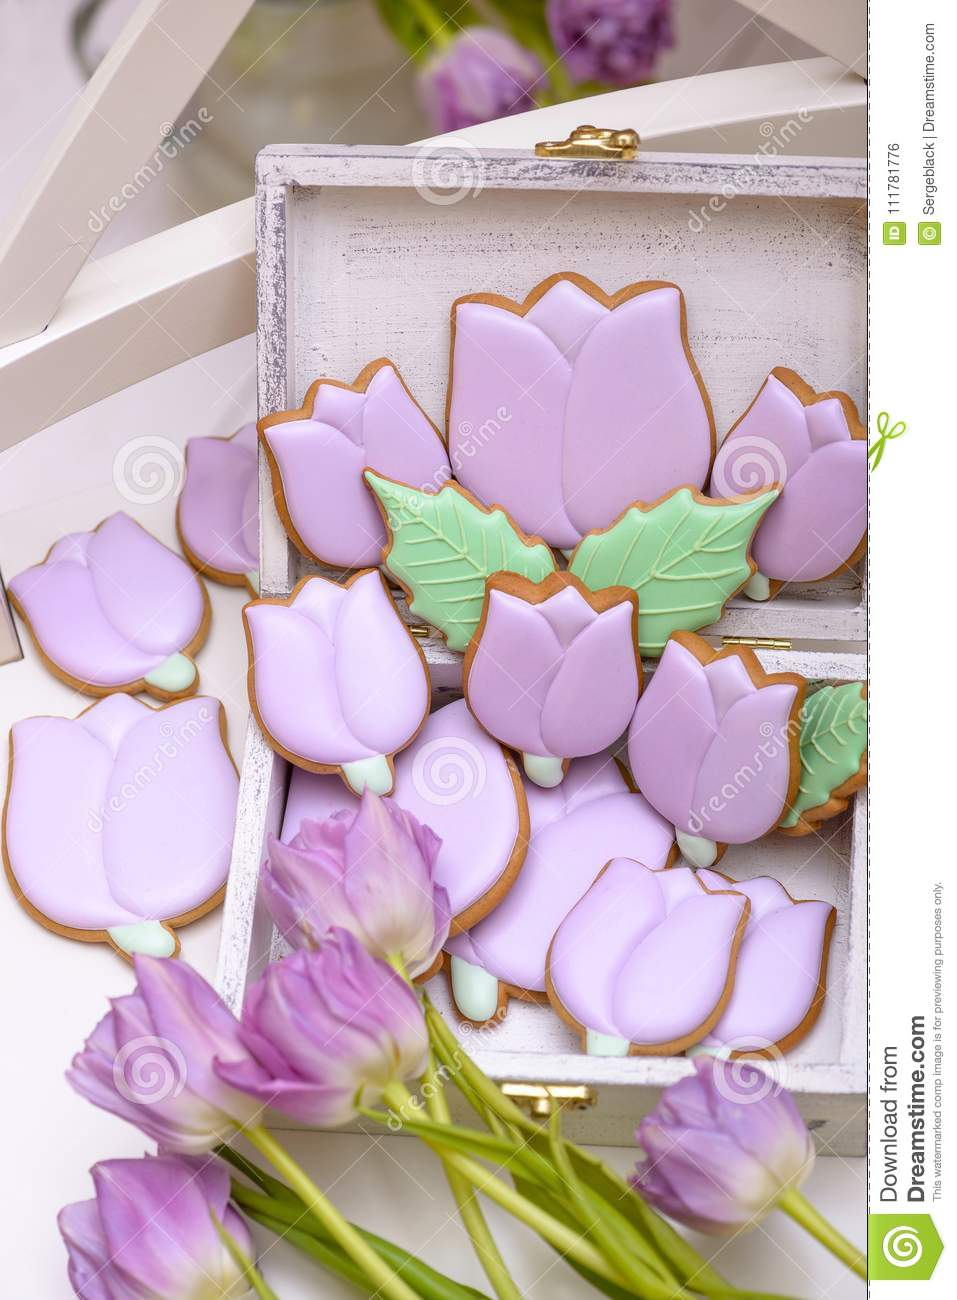 Purple homemade gingerbread cookies in the shape of tulips